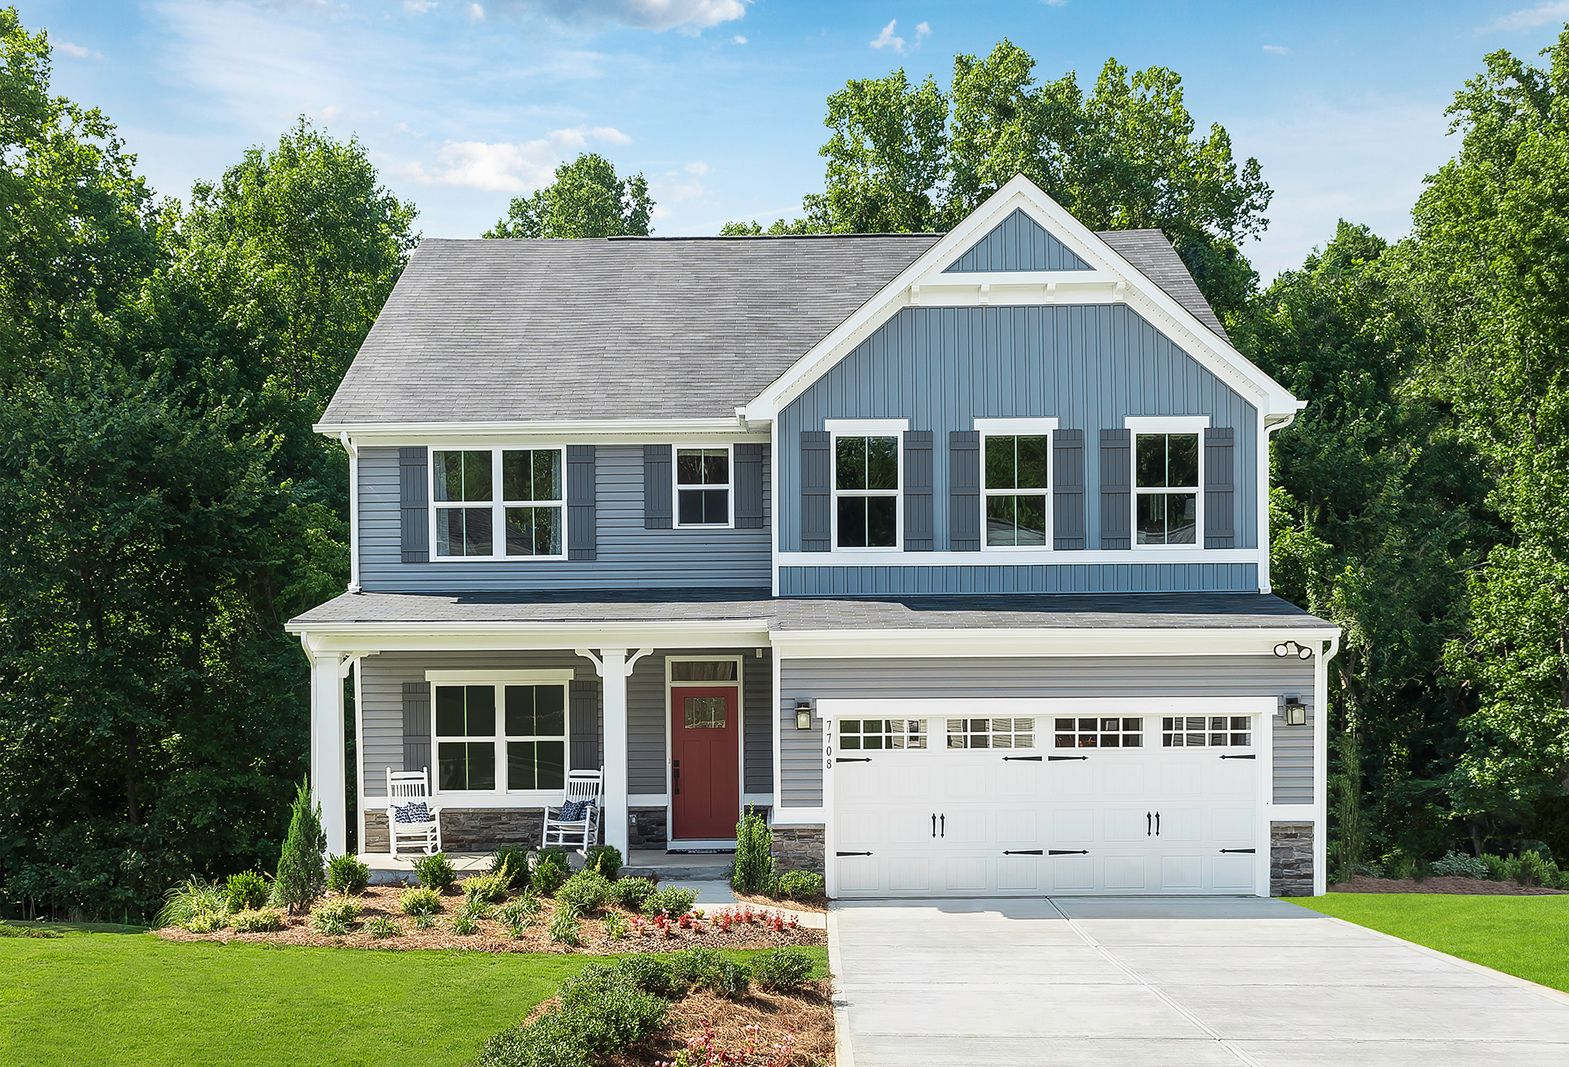 Love Where You Live at Waltons Grove:Enjoy spacious new homes for an amazing value in Mt. Juliet with amenities & Wilson County schools.Schedule a visit today to take a tour of our model!